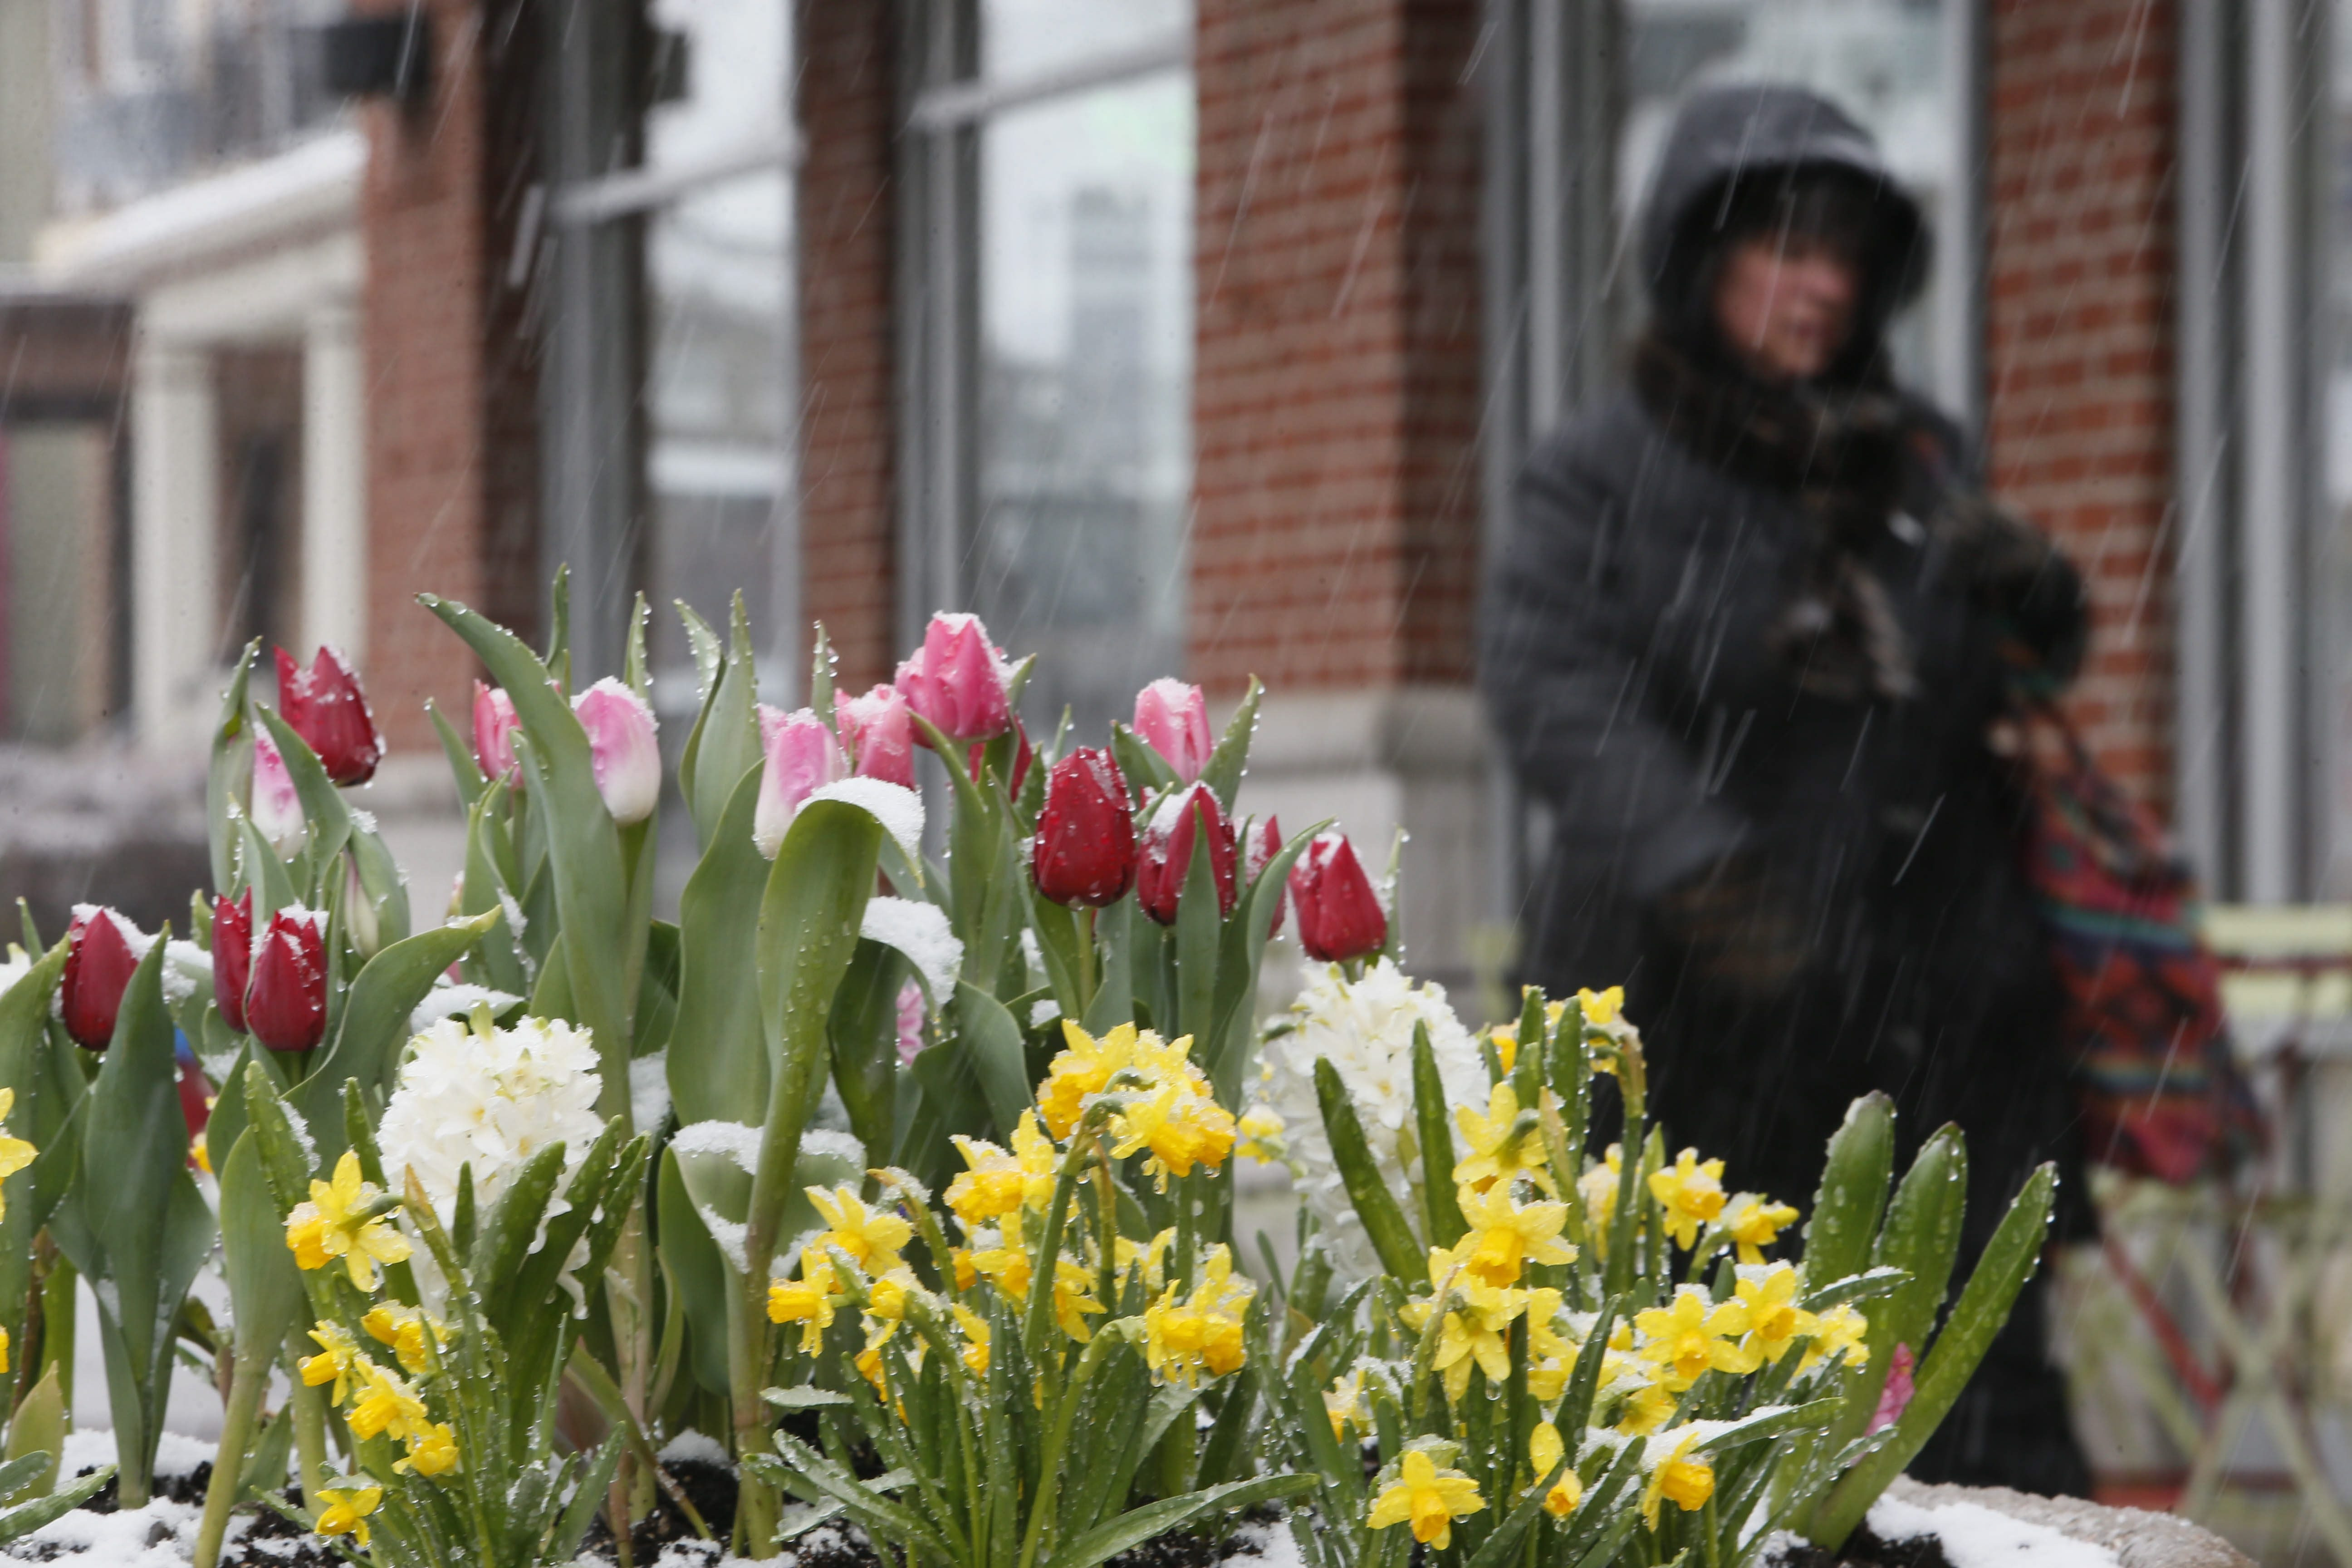 Brightly colored spring flowers in a planter on Elmwood Avenue collect snow, Tuesday, April 15, 2014.  (Derek Gee/Buffalo News)